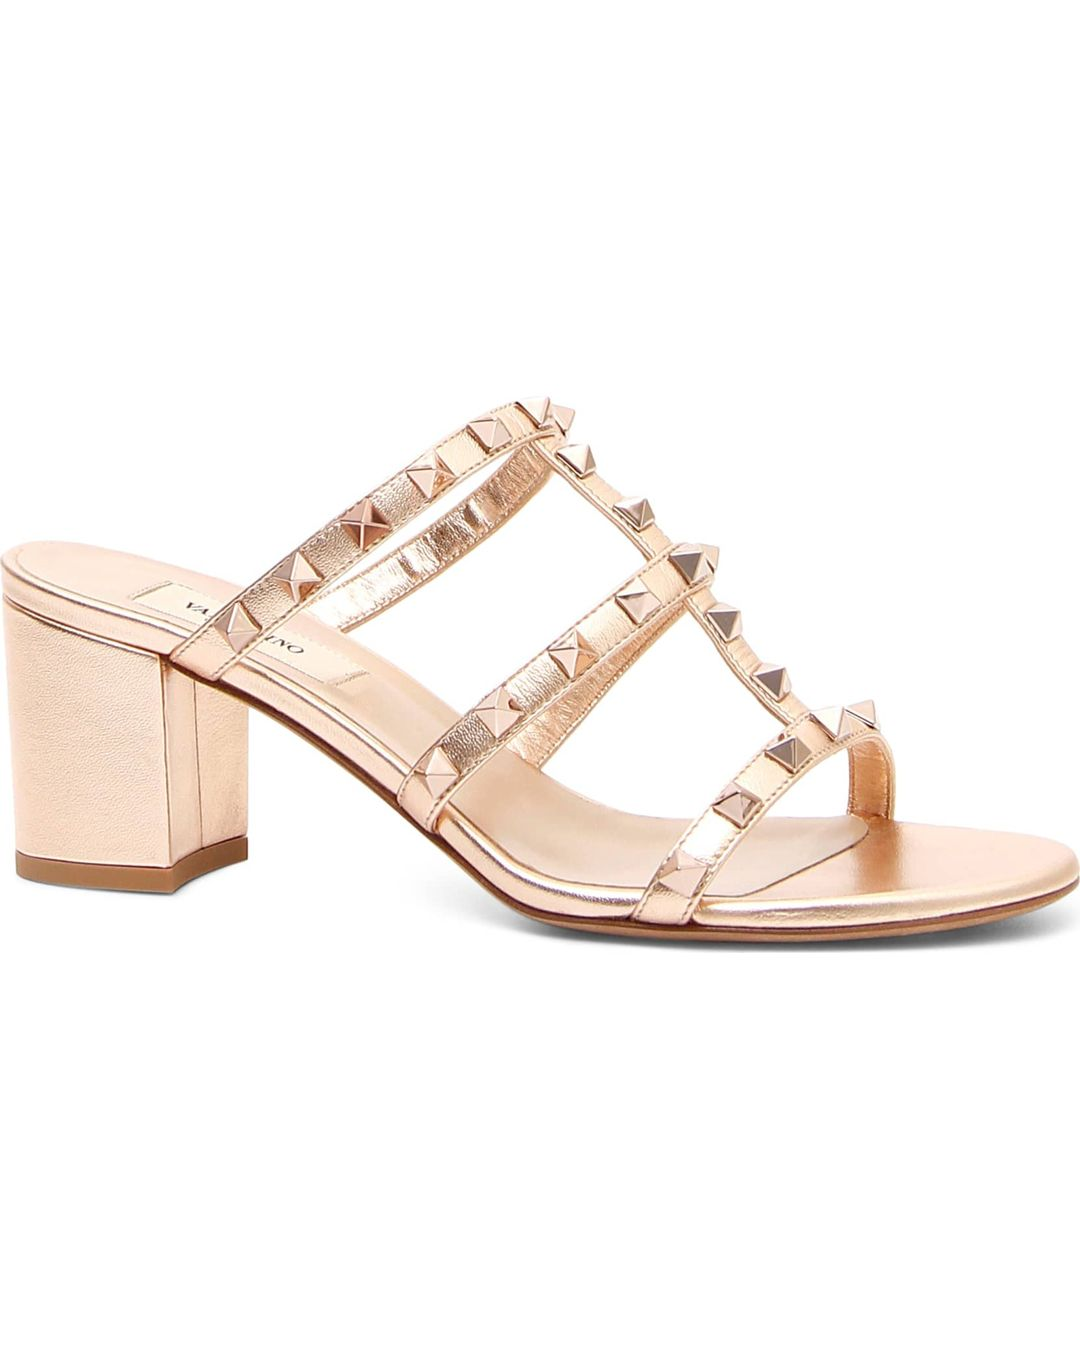 fc8db041e1e6 Valentino Garavani Rockstud Caged Sandal Reviews and prices Only ...